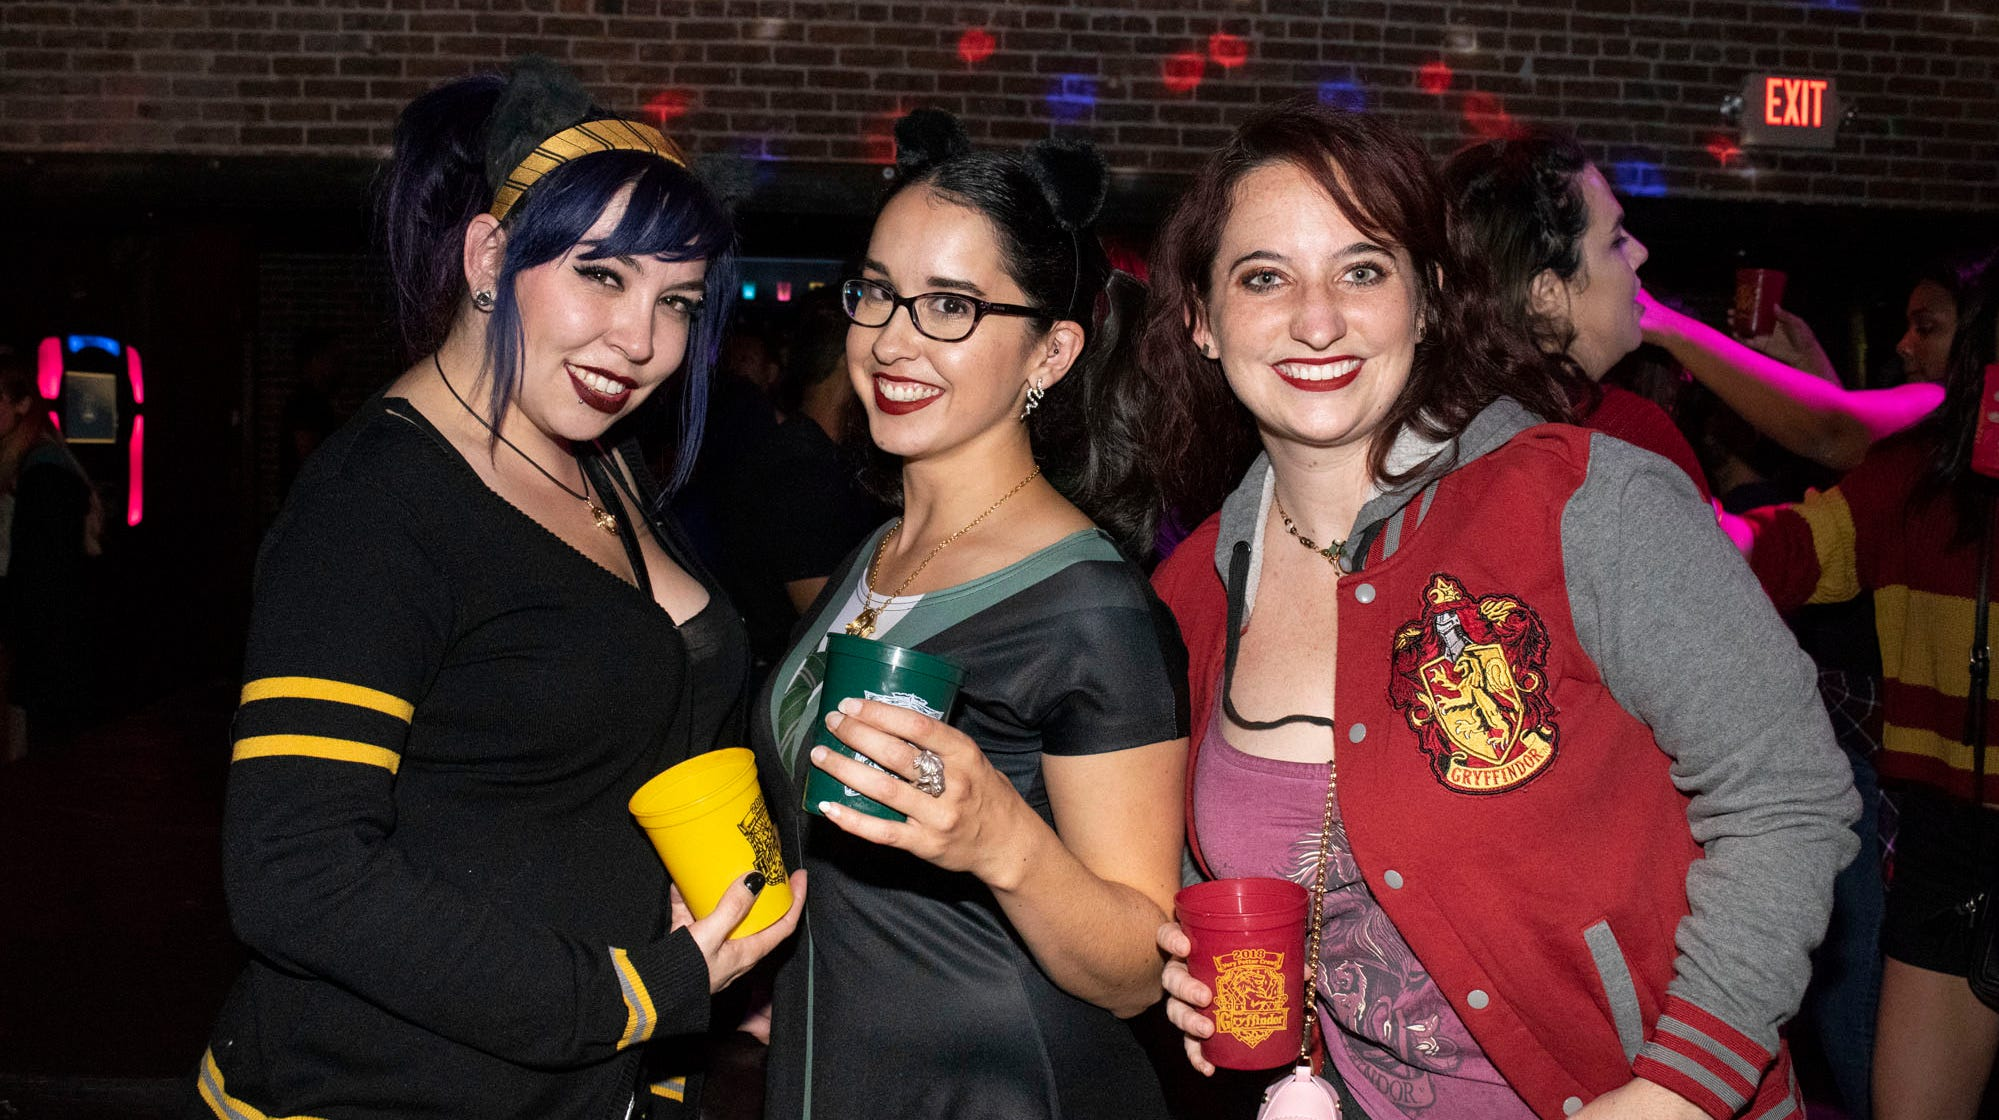 Tara, Michelle, and Lexi attend the Harry Potter Crawl on Saturday, Sept. 22, 2018.